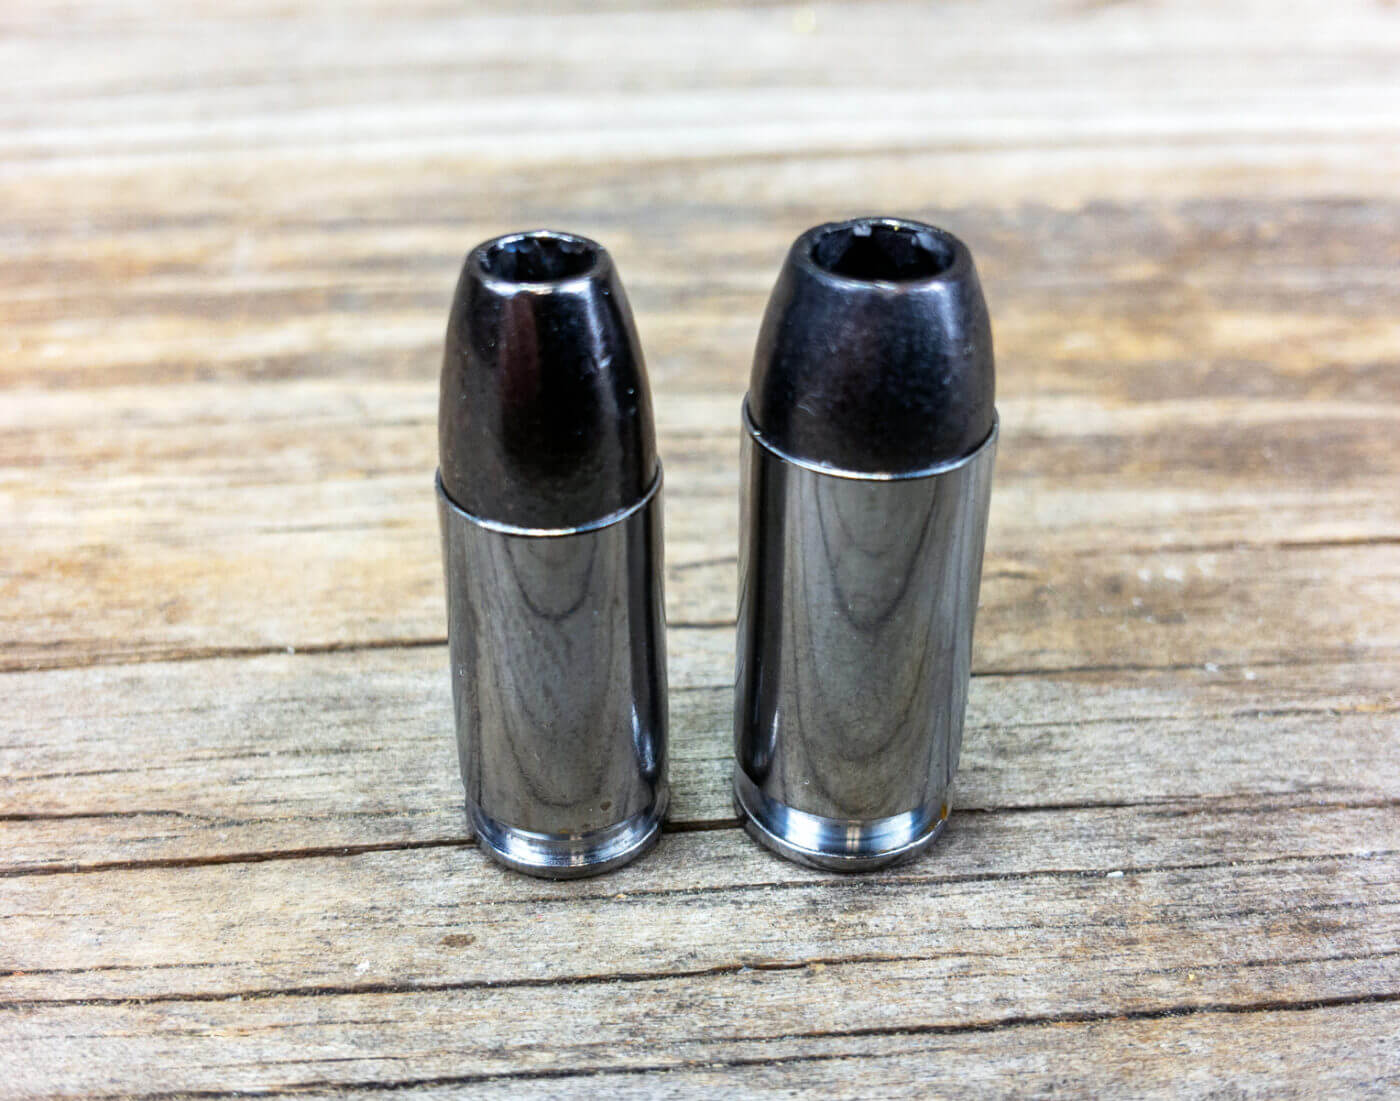 A comparison of the 9mm and .40 S&W cartridges